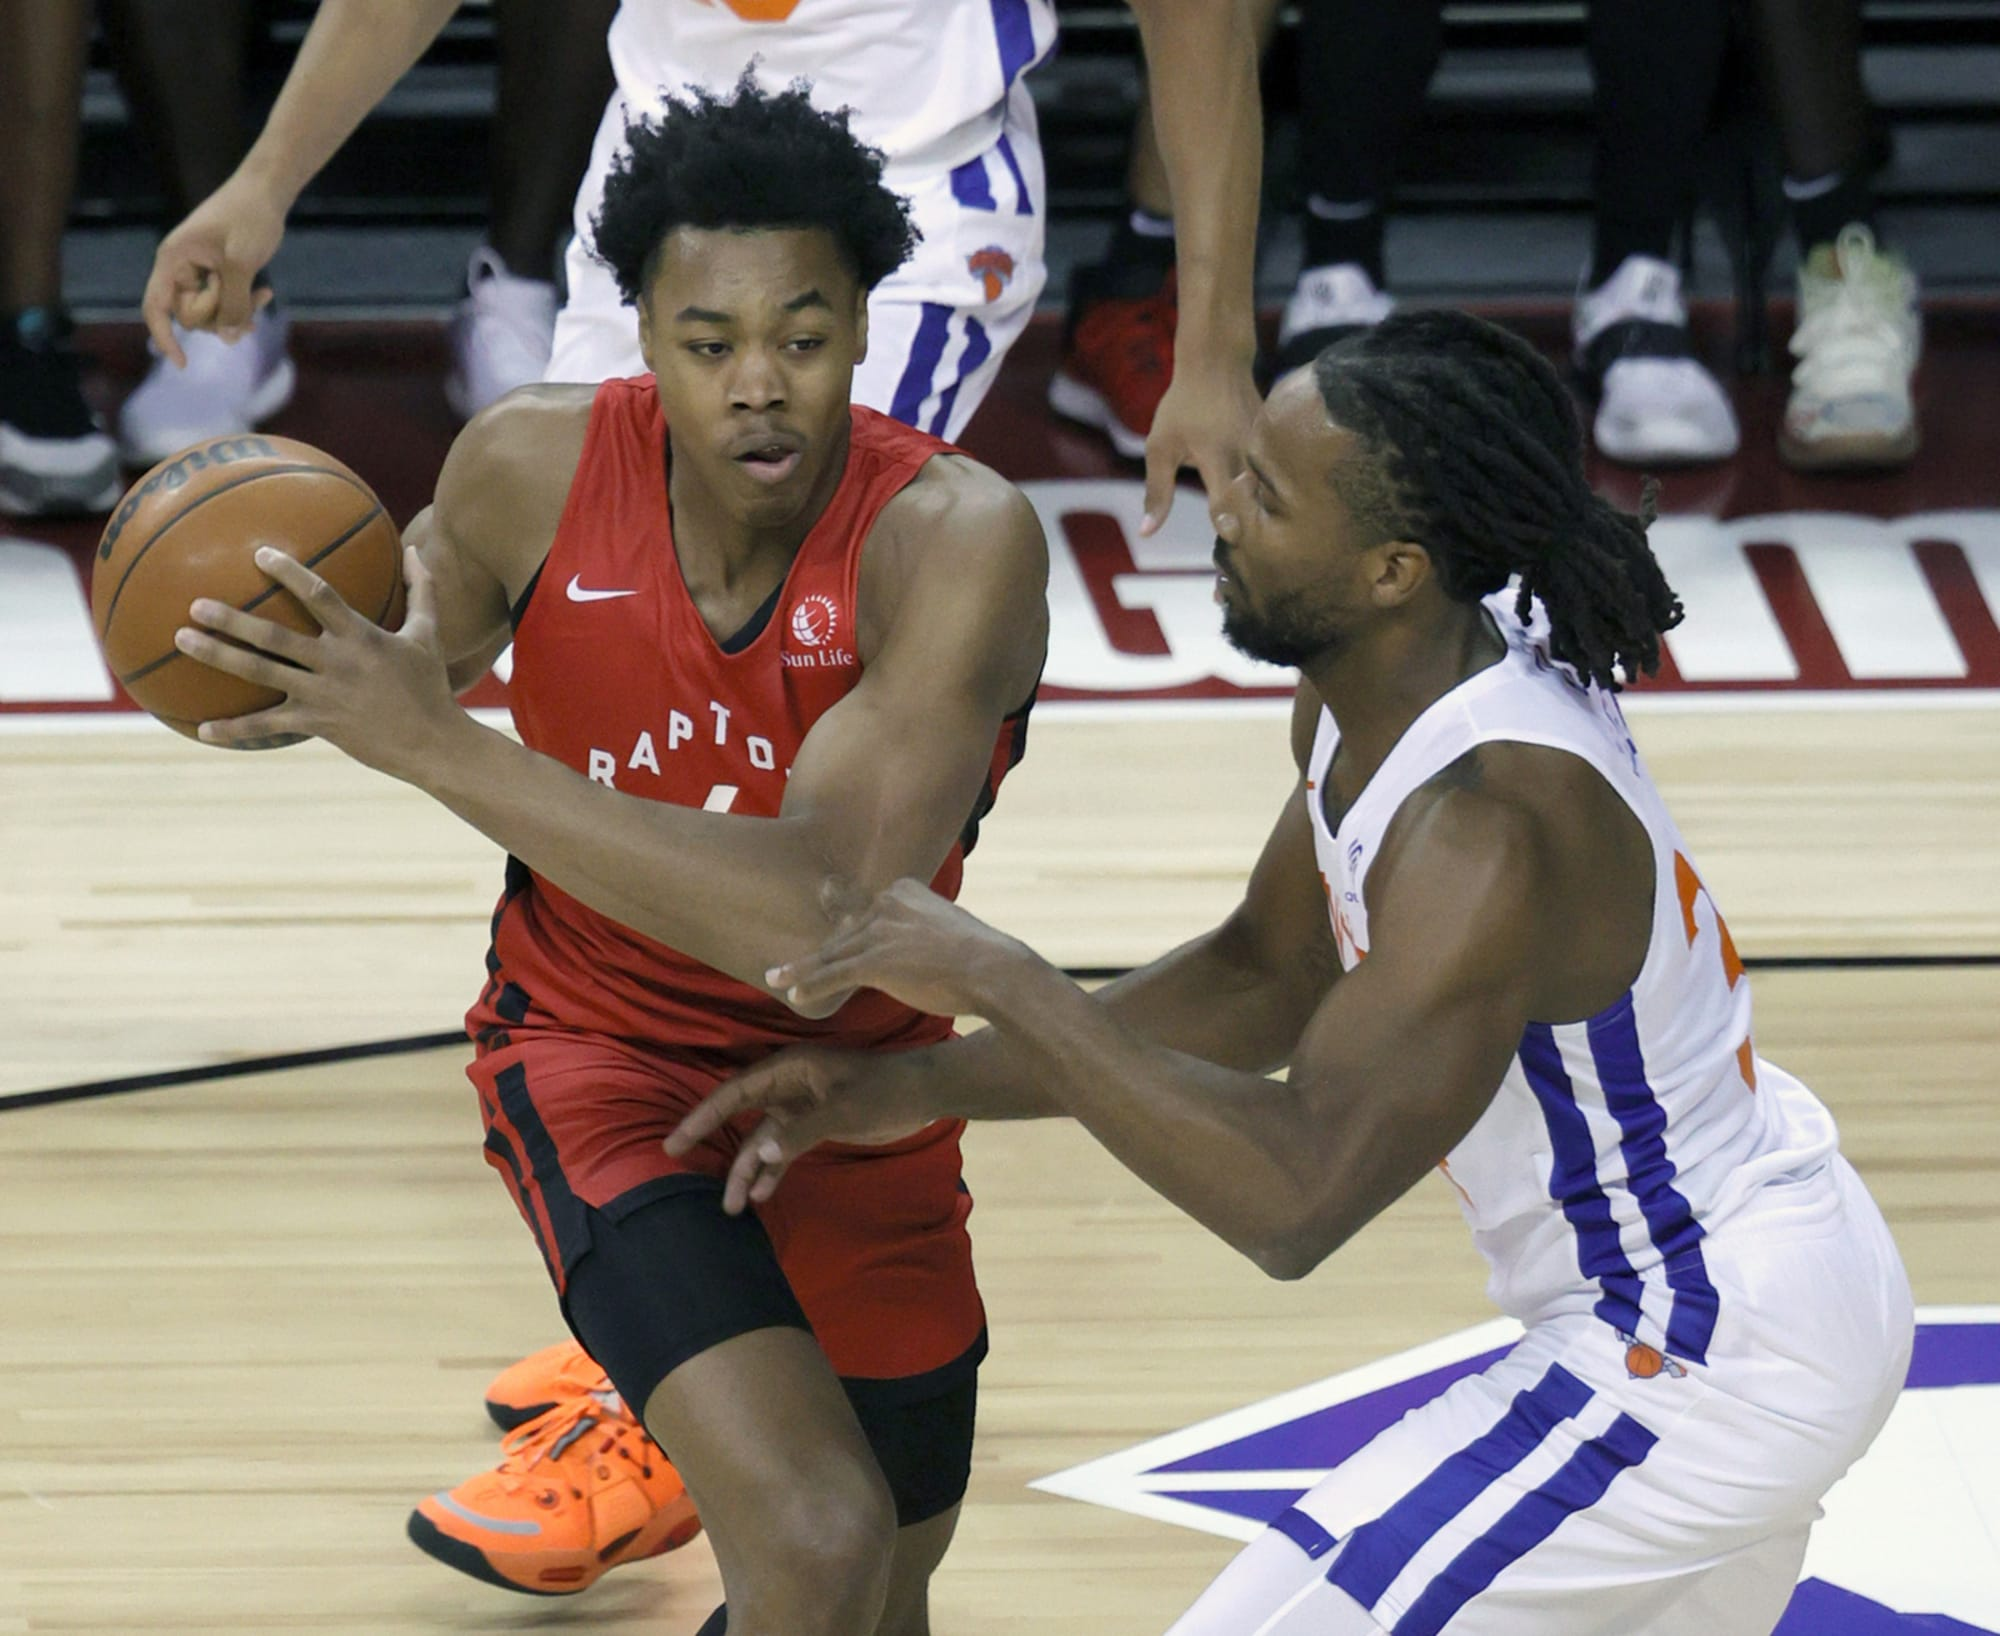 The Toronto Raptors are embracing the positionless basketball movement